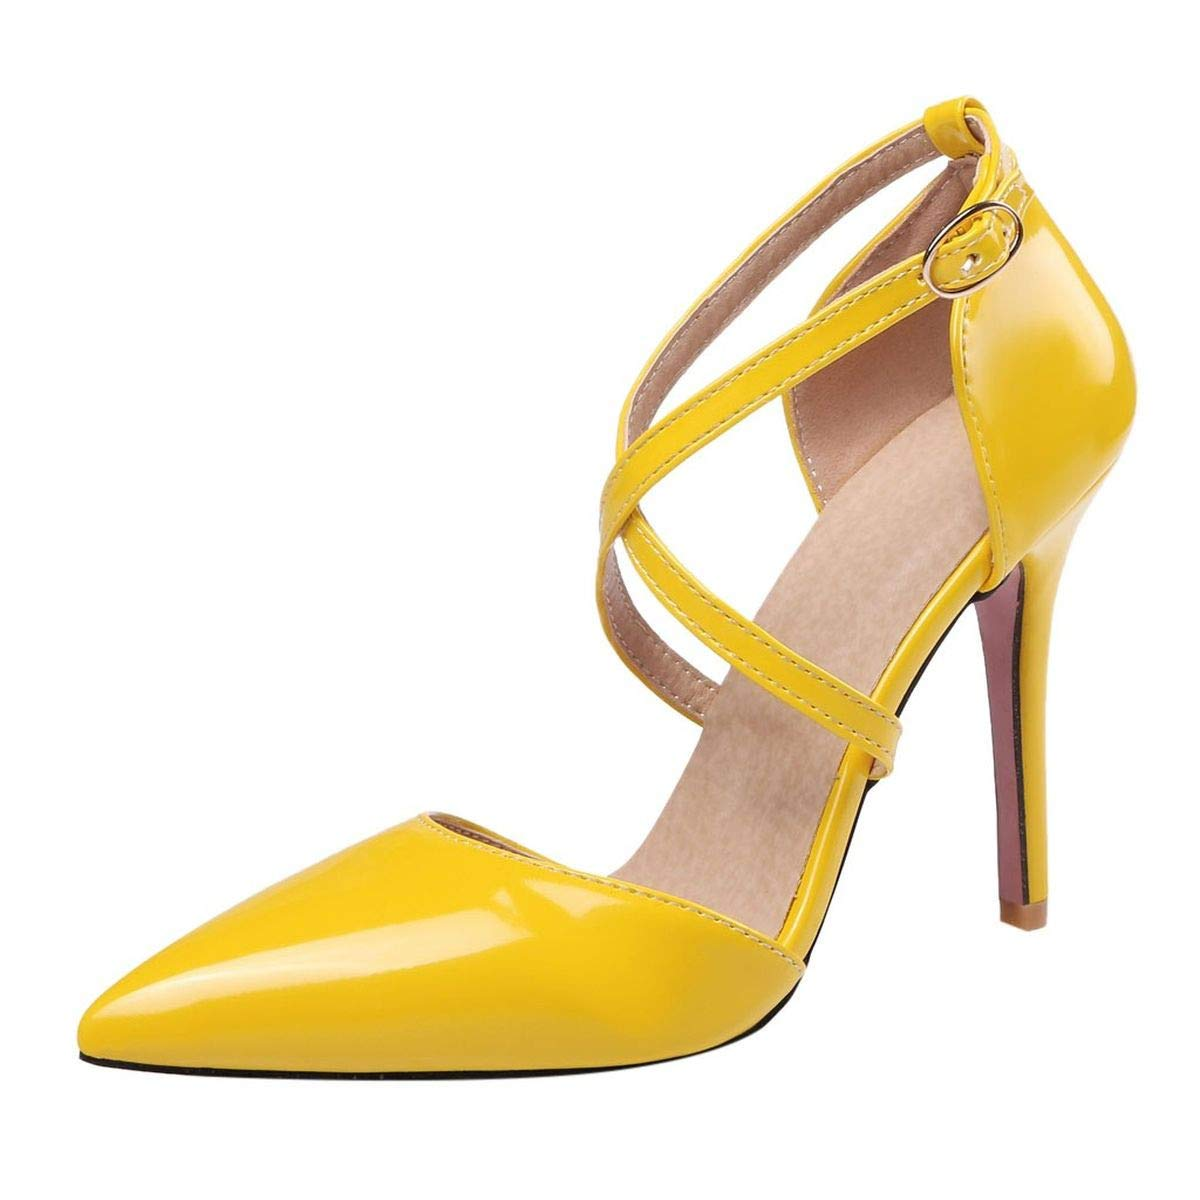 Women's Pointed Toe High Heel Cross Ankle Strap D'Orsay Leather Dress Pumps Wedding Bridal Evening Party Dress Shoes (Yellow, 6.5)